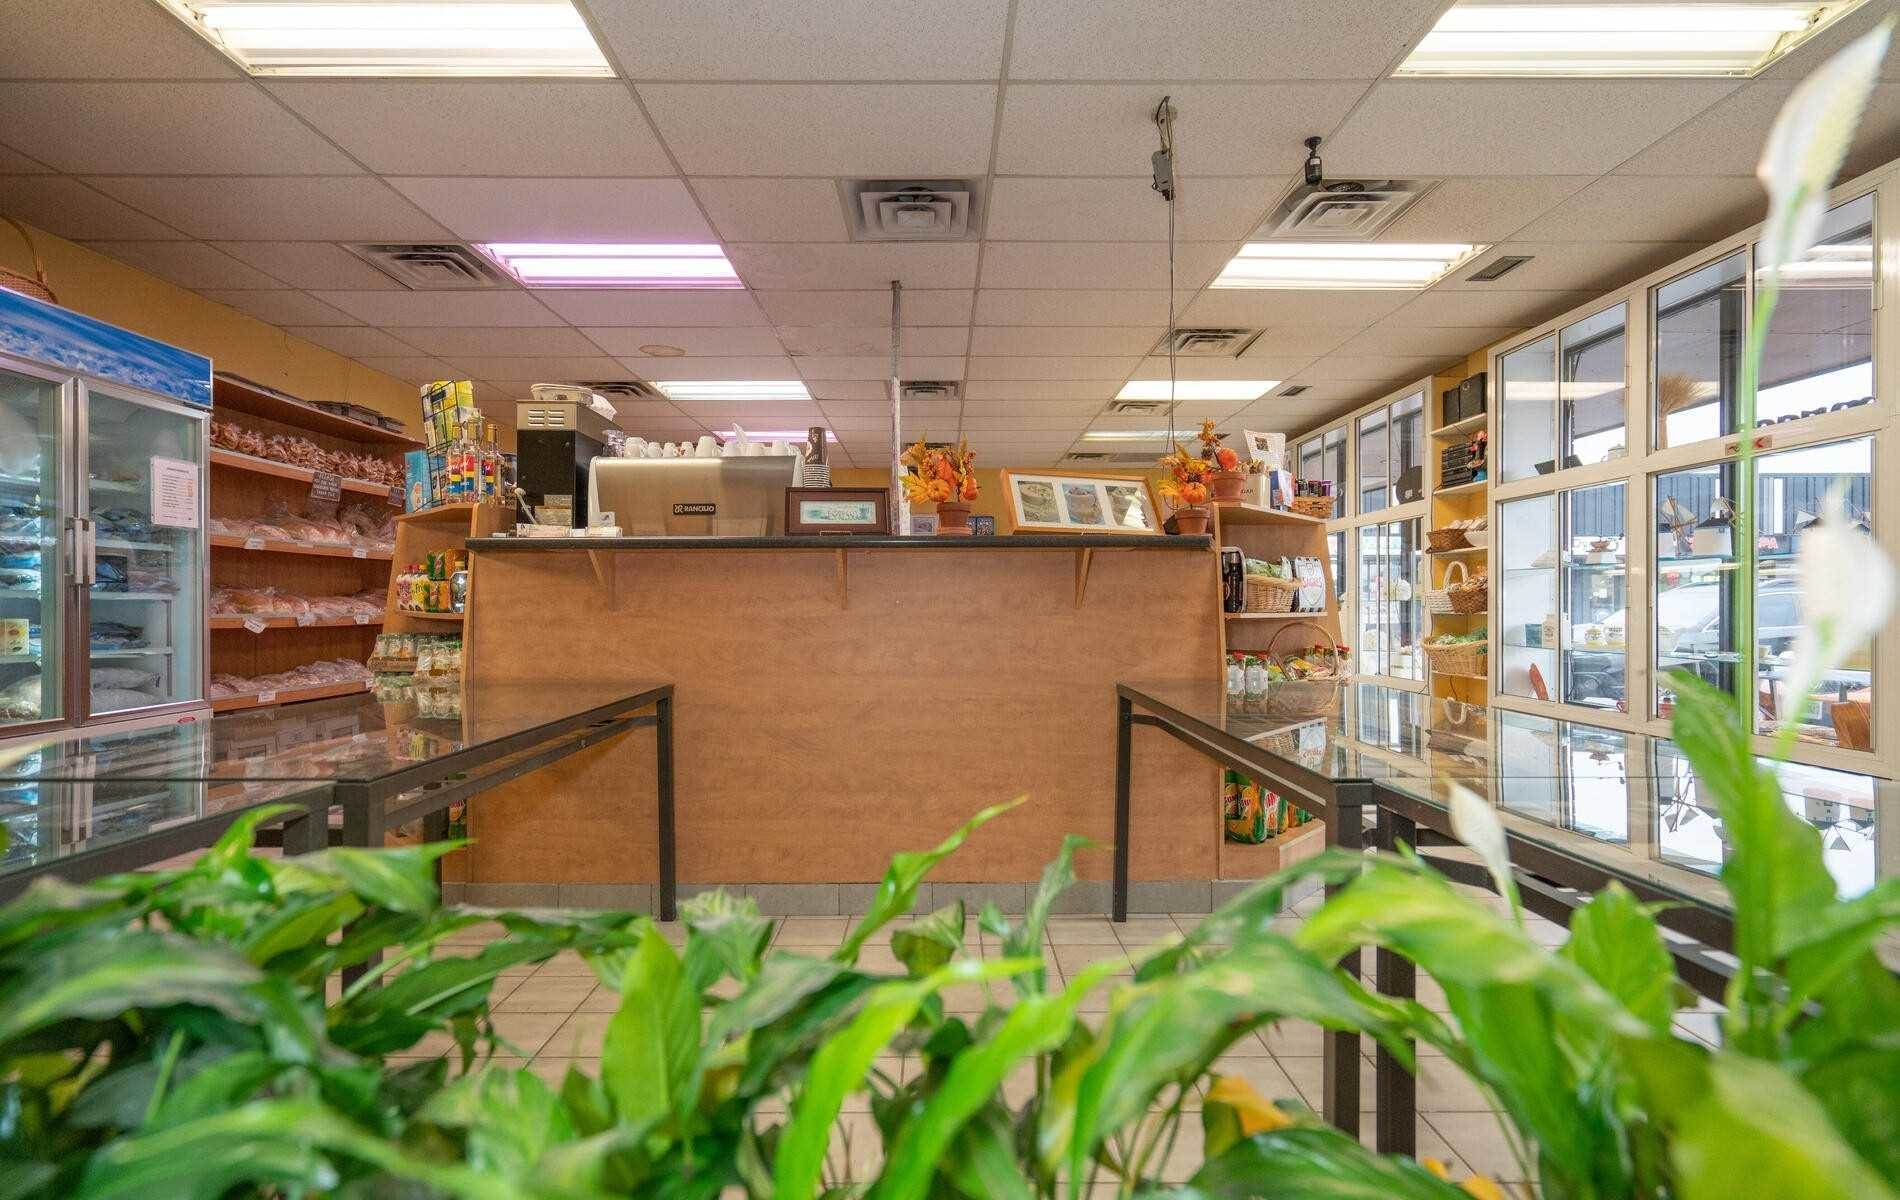 4 Mclaughlin Rd S in Brampton - Commercial For Sale : MLS# w5140894 Photo 10